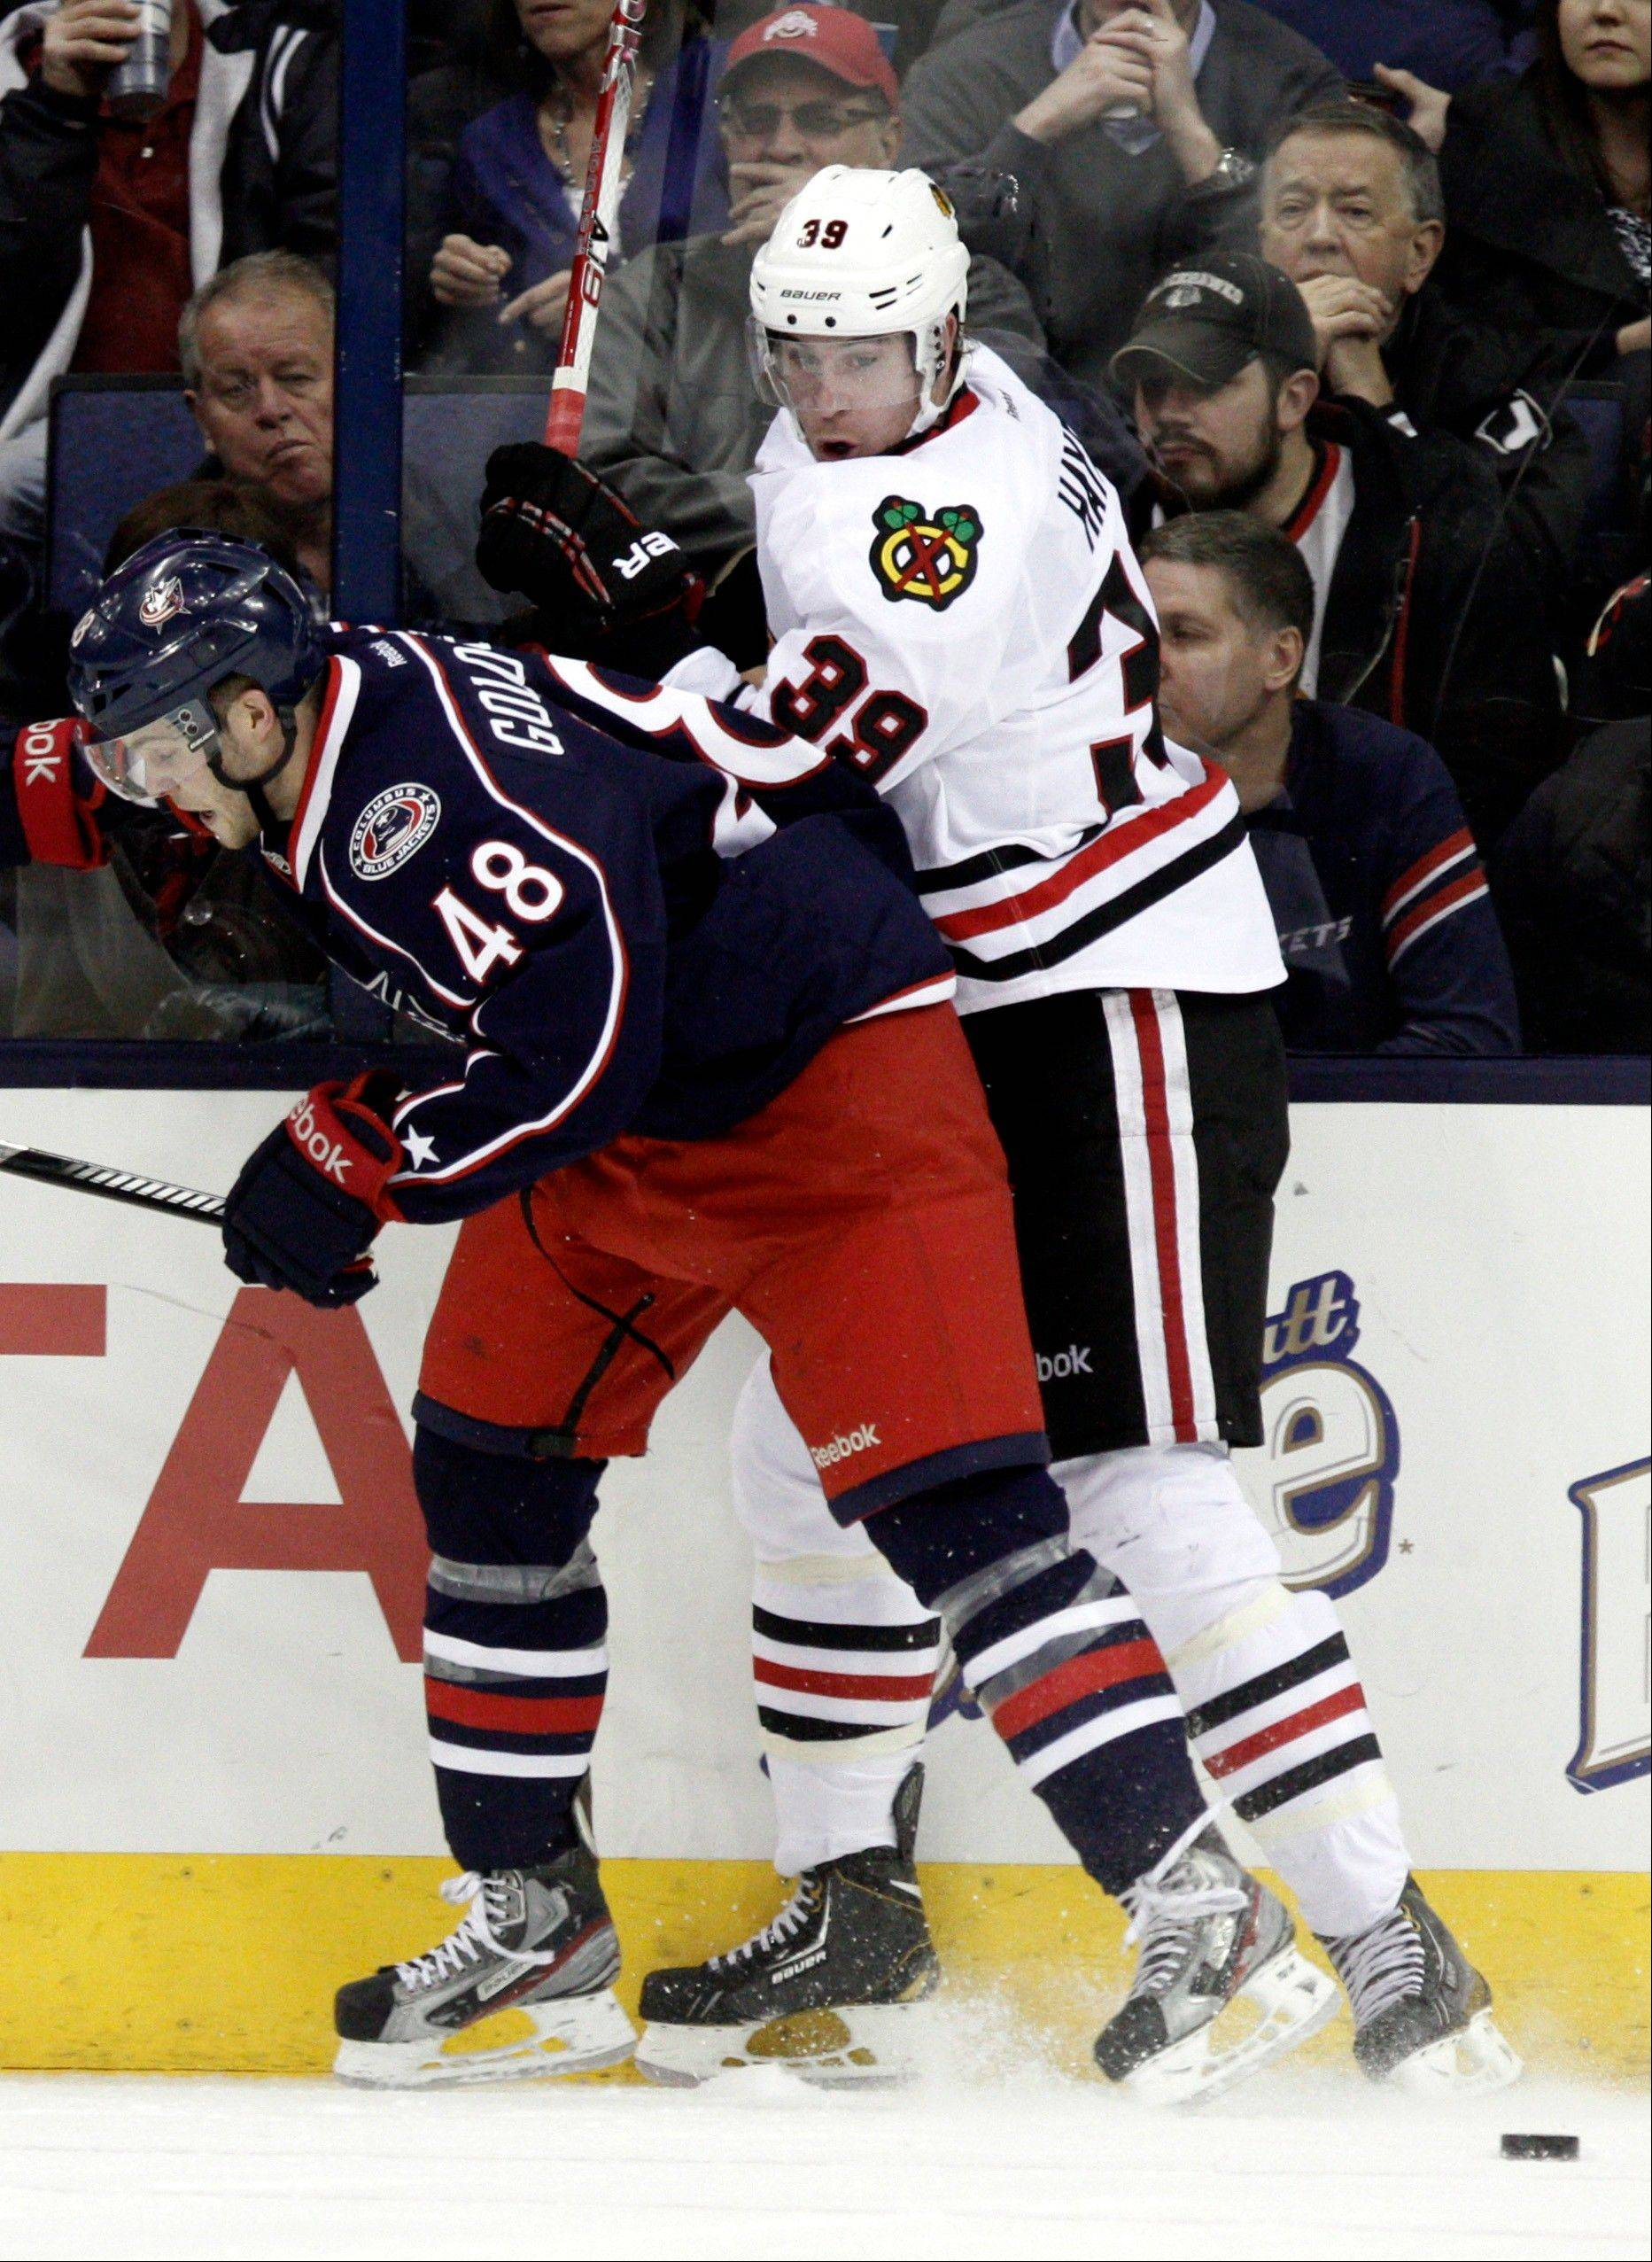 Jimmy Hayes, right, of the Blackhawks battles for the puck in Columbus on Thursday night. Hayes played 16 minutes on a line with Dave Bolland and Patrick Kane.